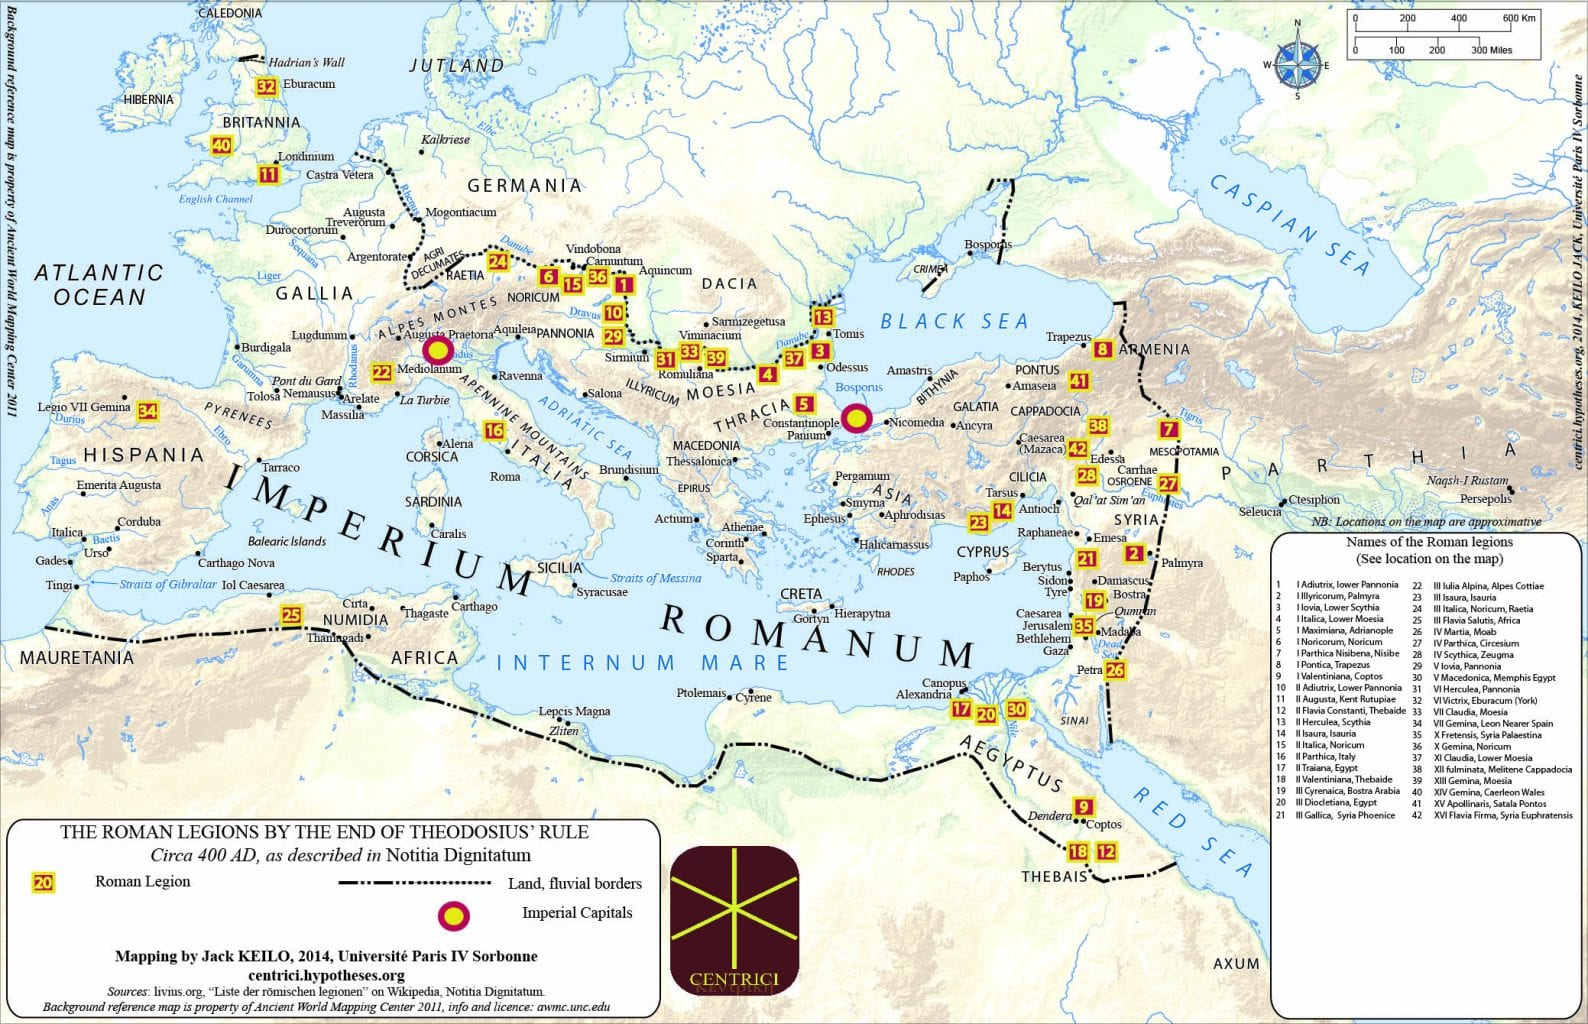 Map showing the disposal of the Roman Legions around 400 AD. Credit: Centrici